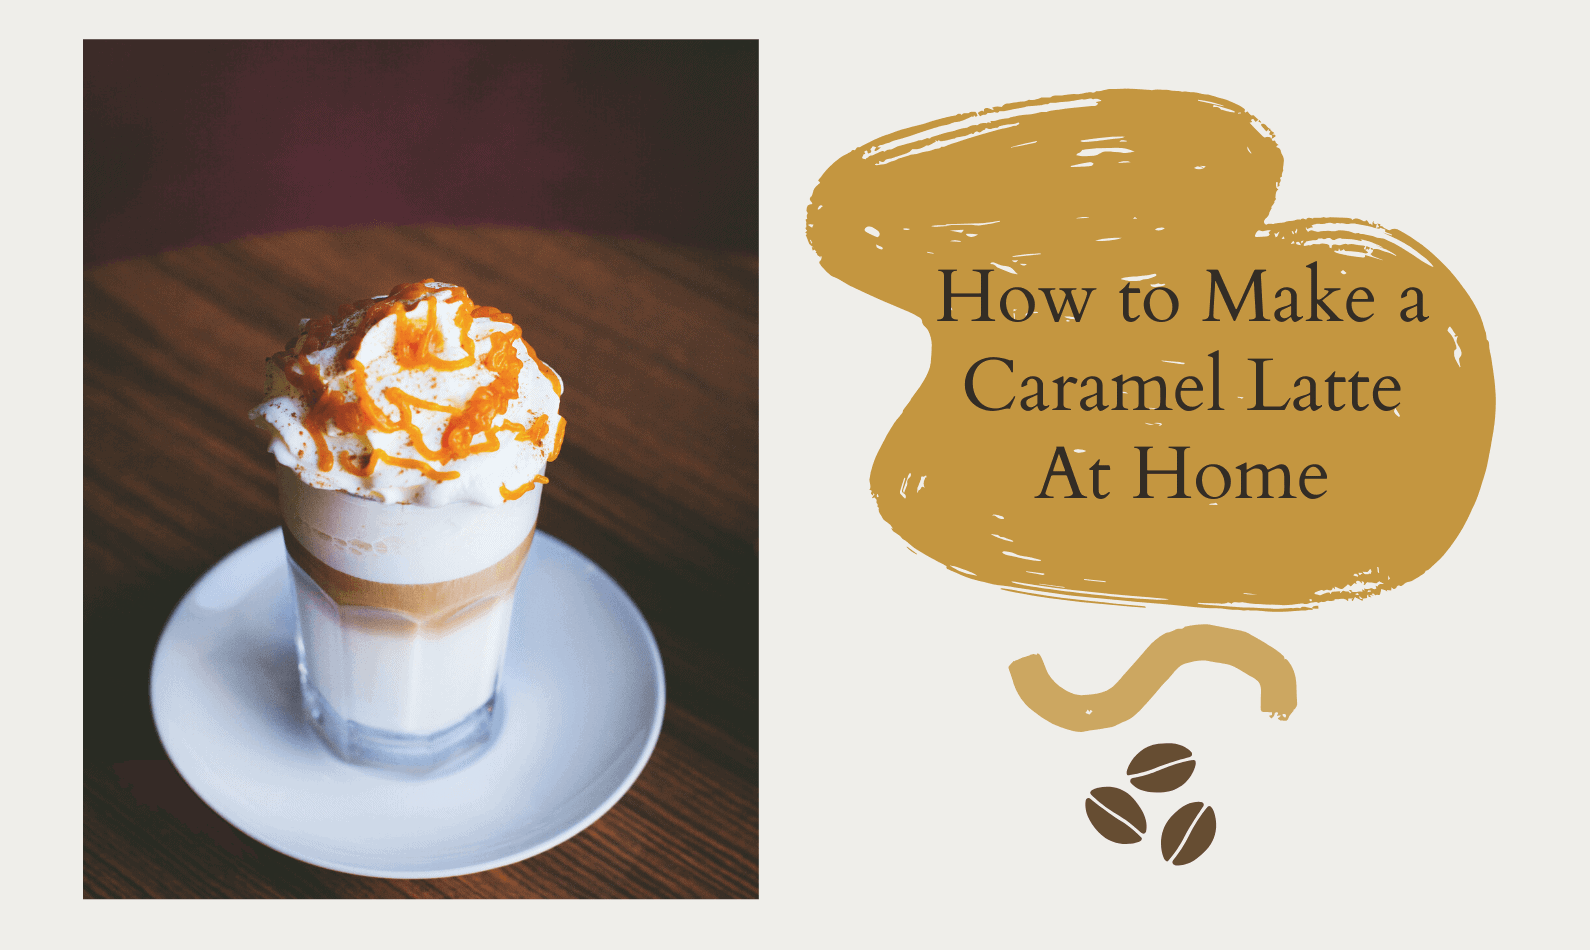 How to Make a Caramel Latte At Home